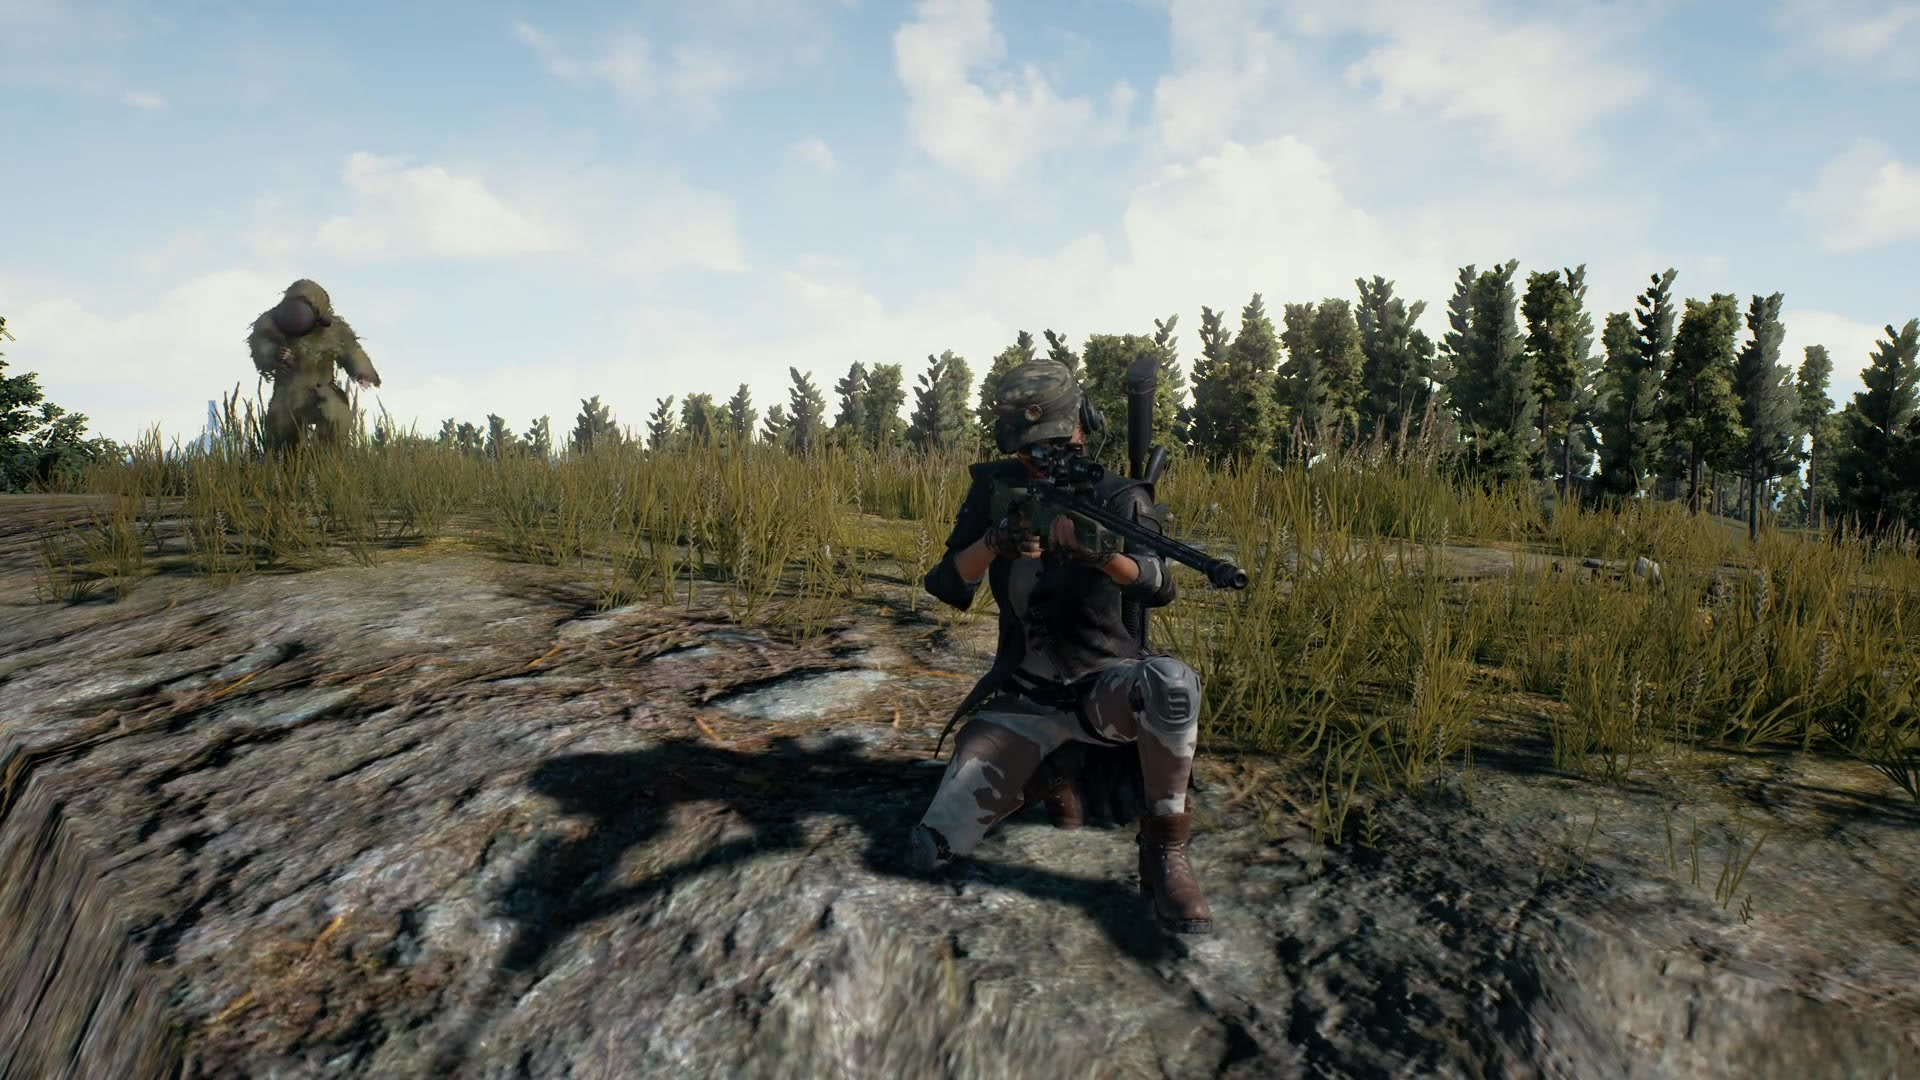 PUBG Corp. wants to put PlayerUnknown's Battlegrounds on